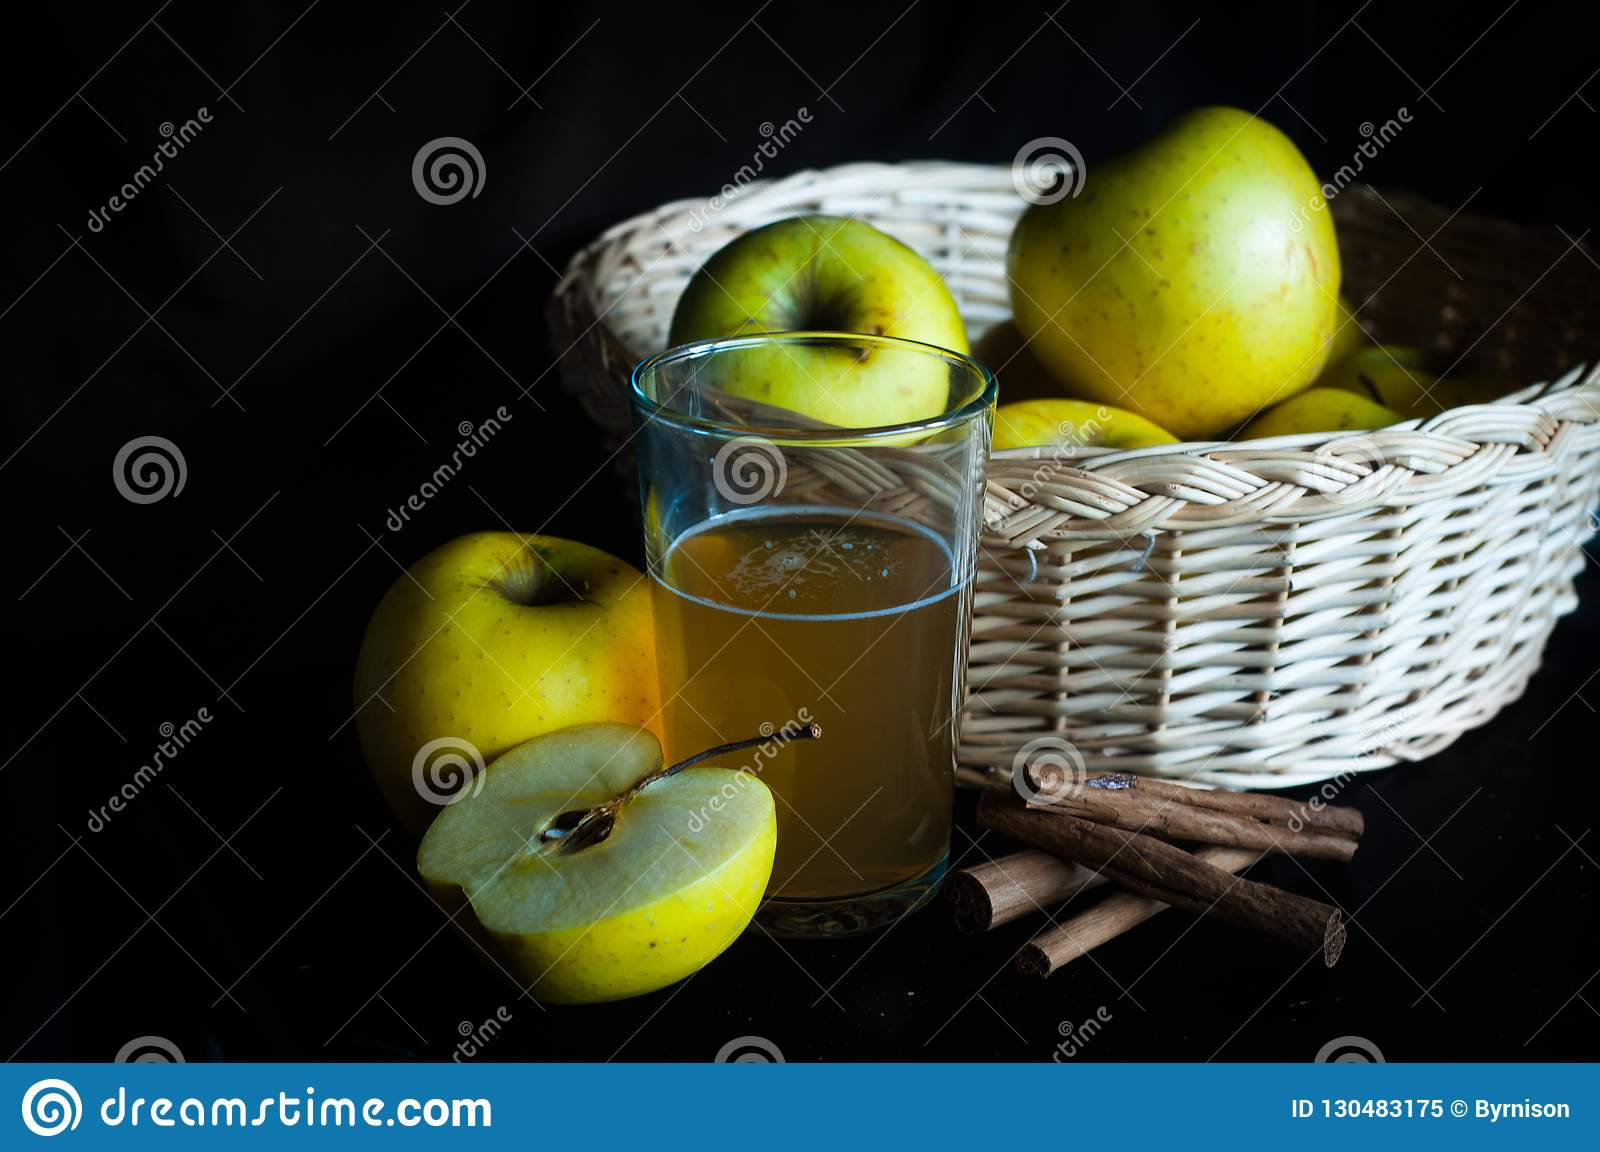 Apple juice in glass with apples